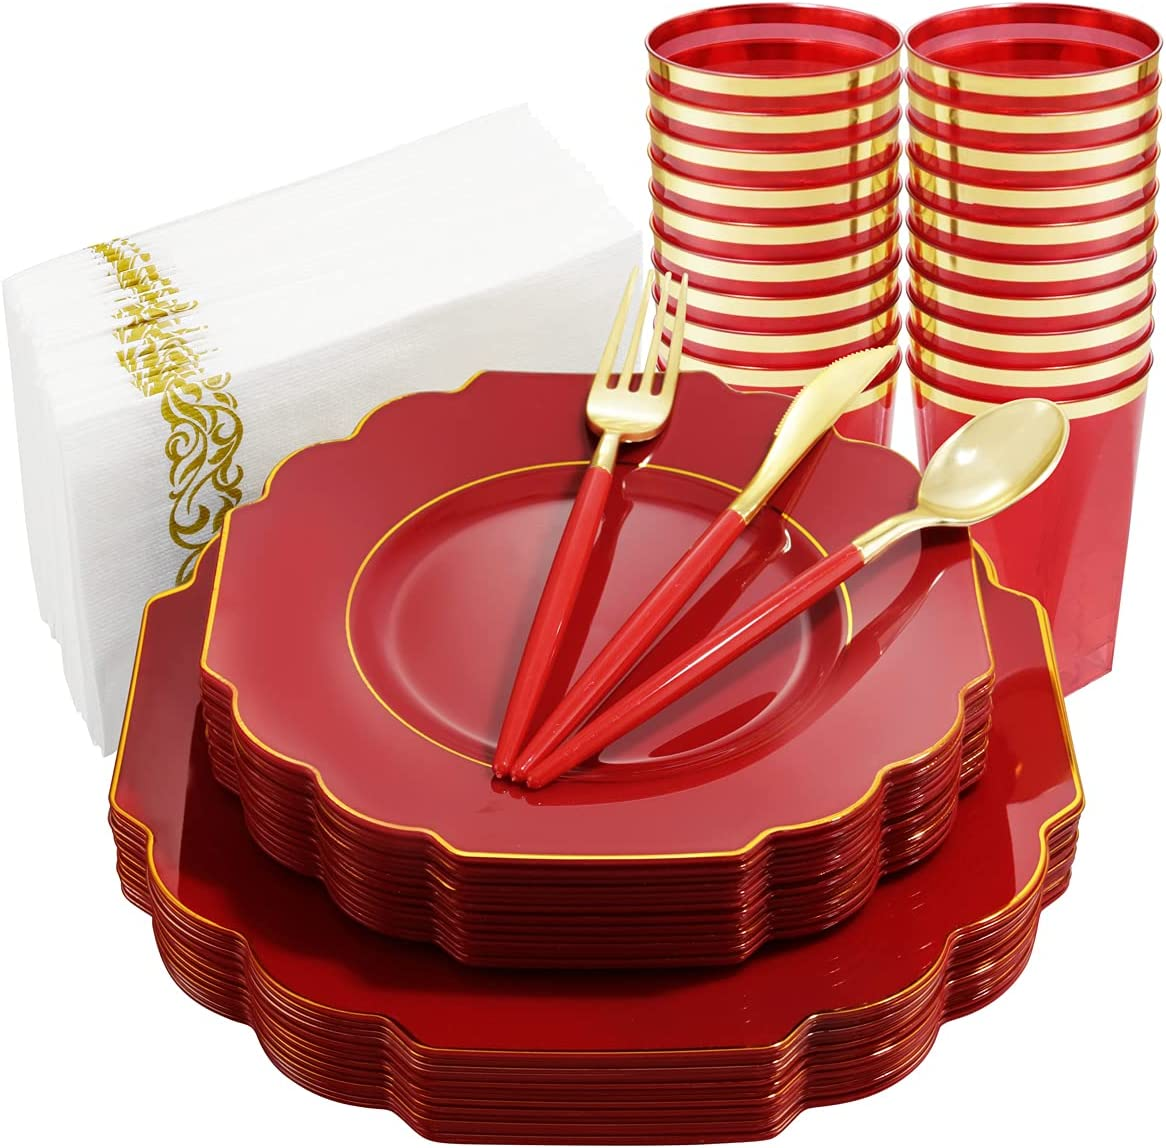 Nervure 140PCS NEW before selling ☆ Red Plastic Silverware with Gold famous Plates